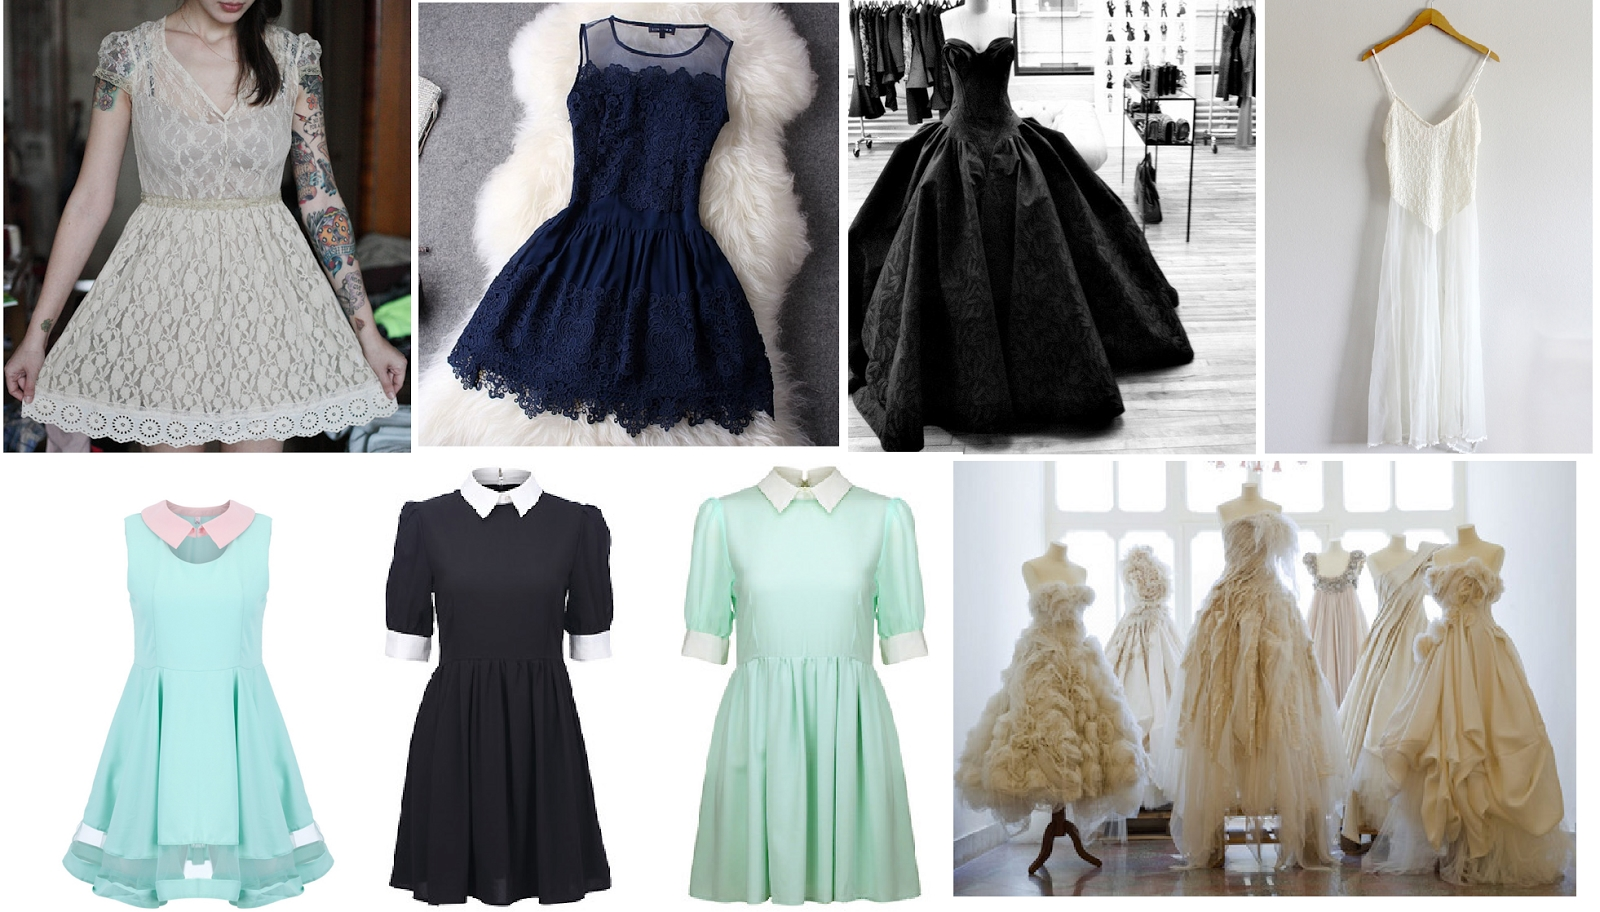 Cute Party Dresses Tumblr | Shopping Guide. We Are Number ...